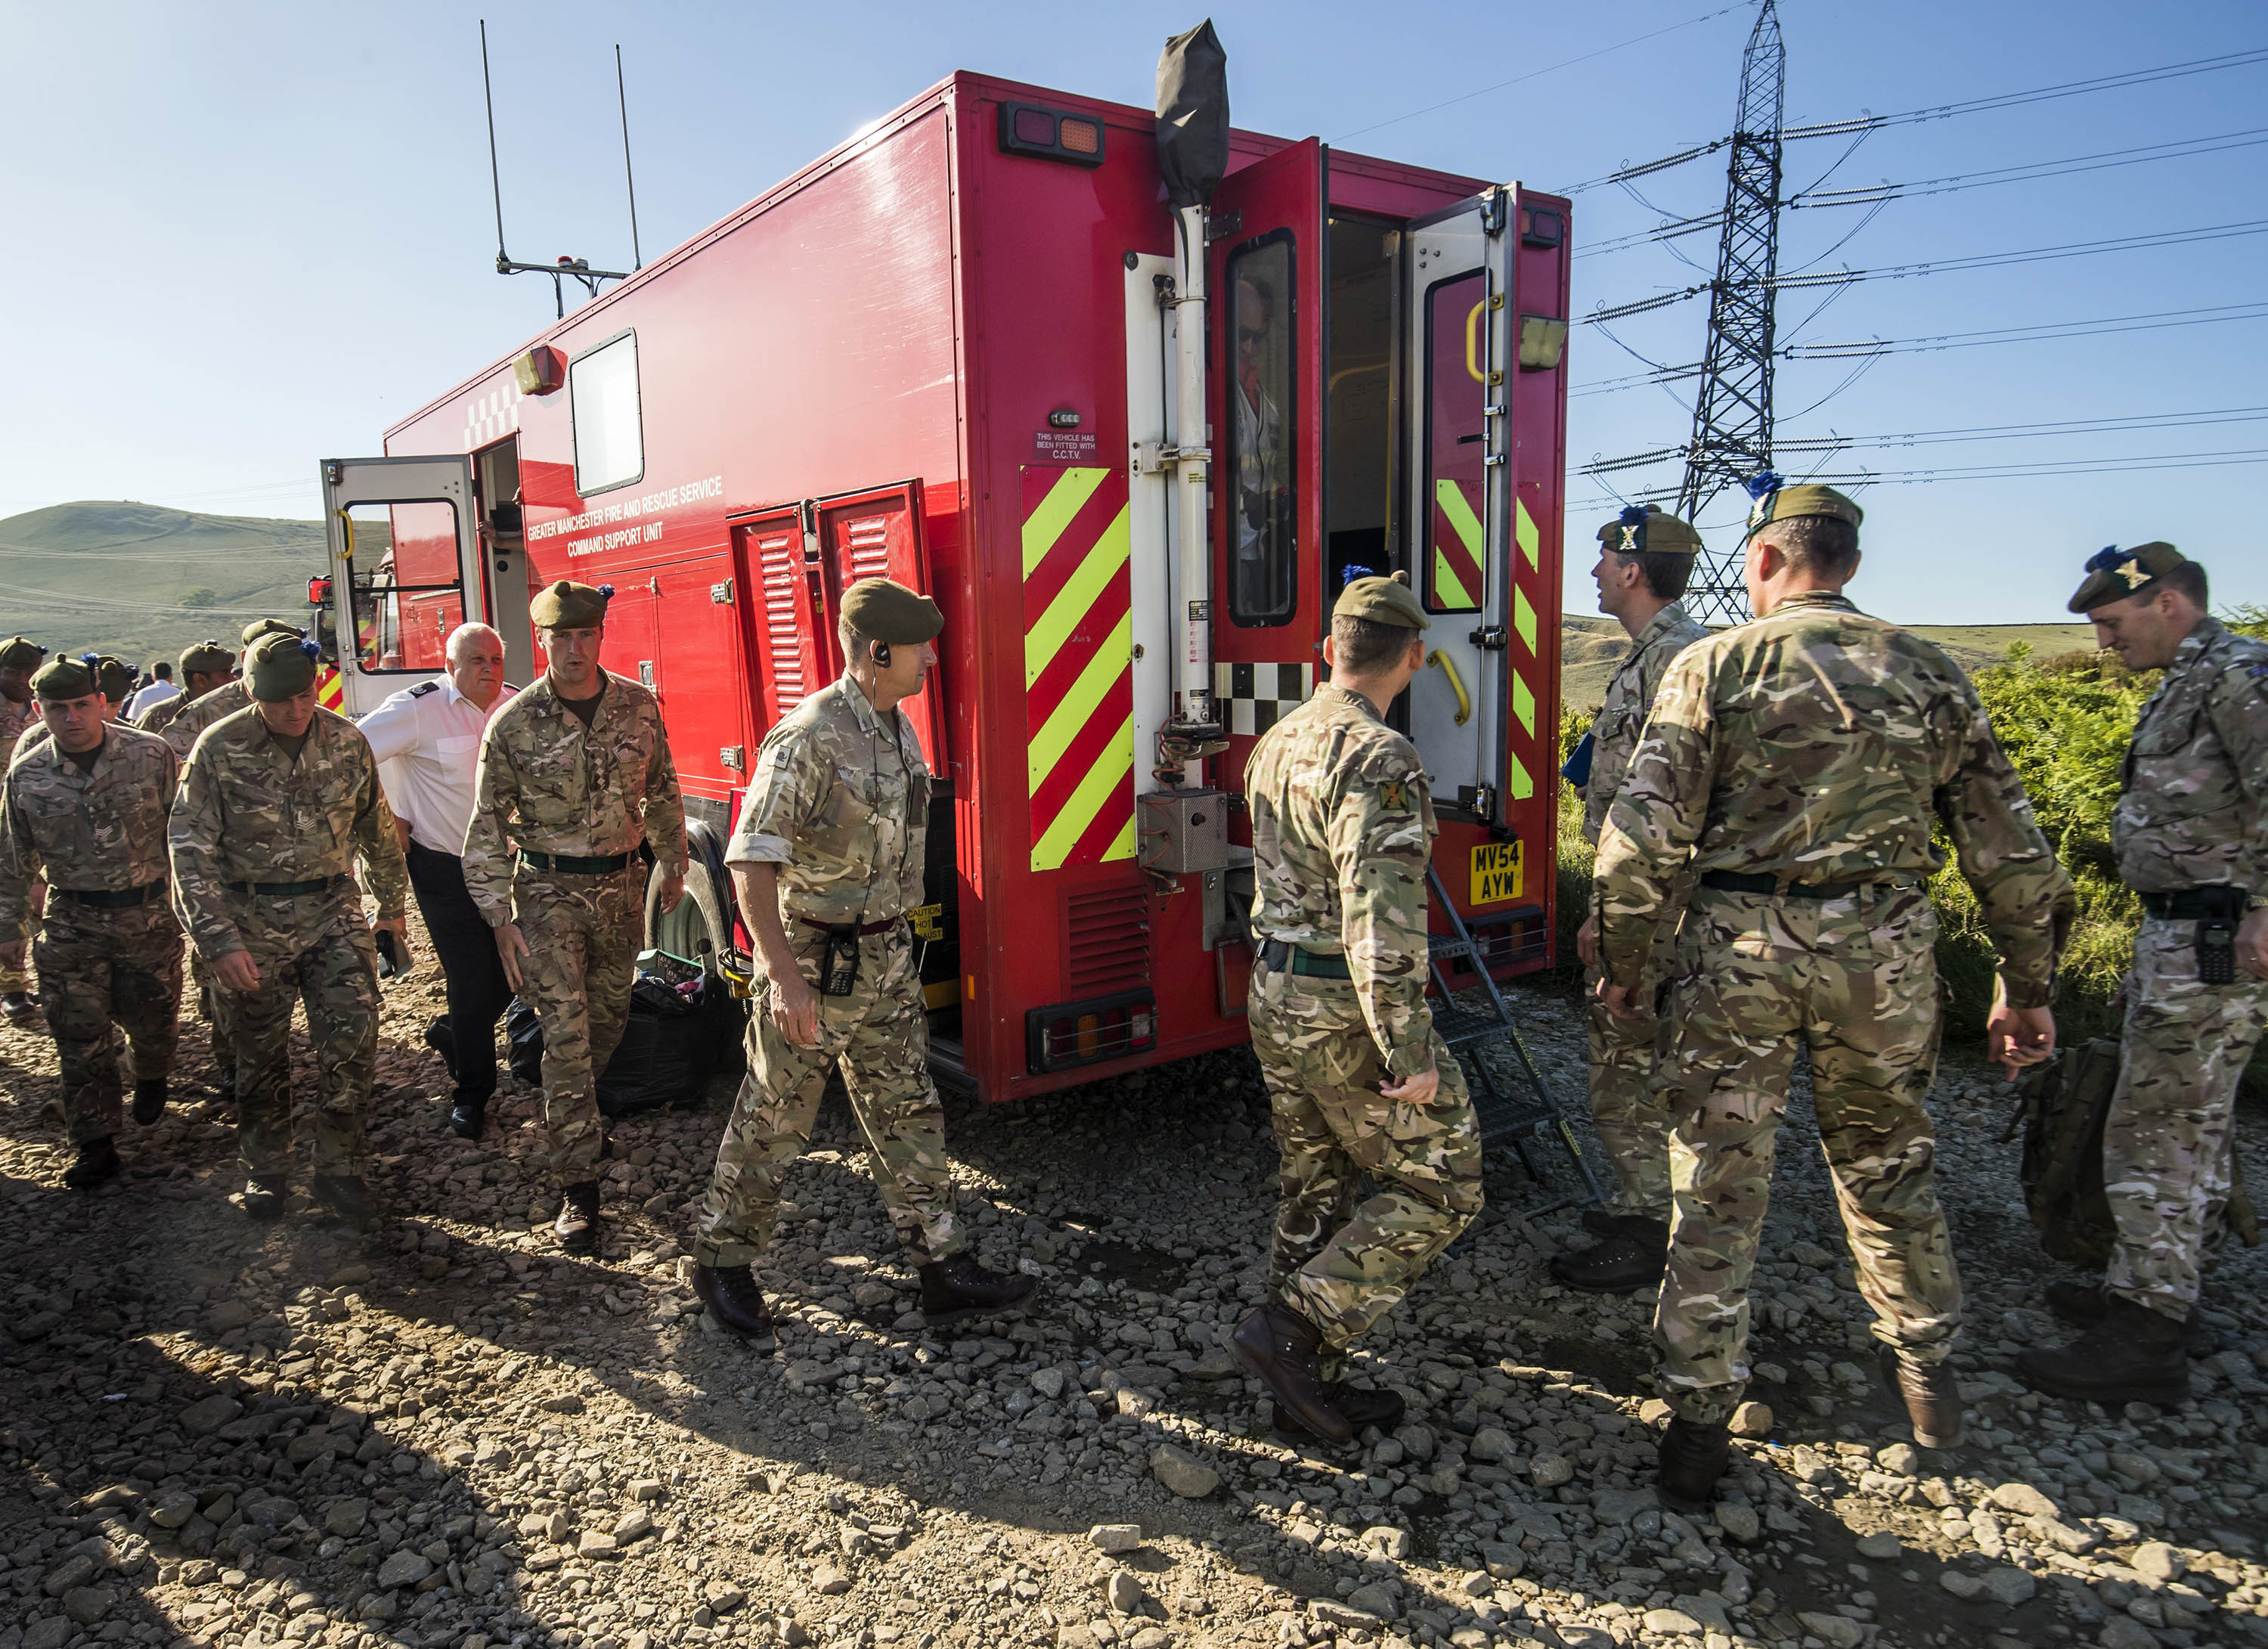 The army was deployed to Saddleworth last year. Credit: PA